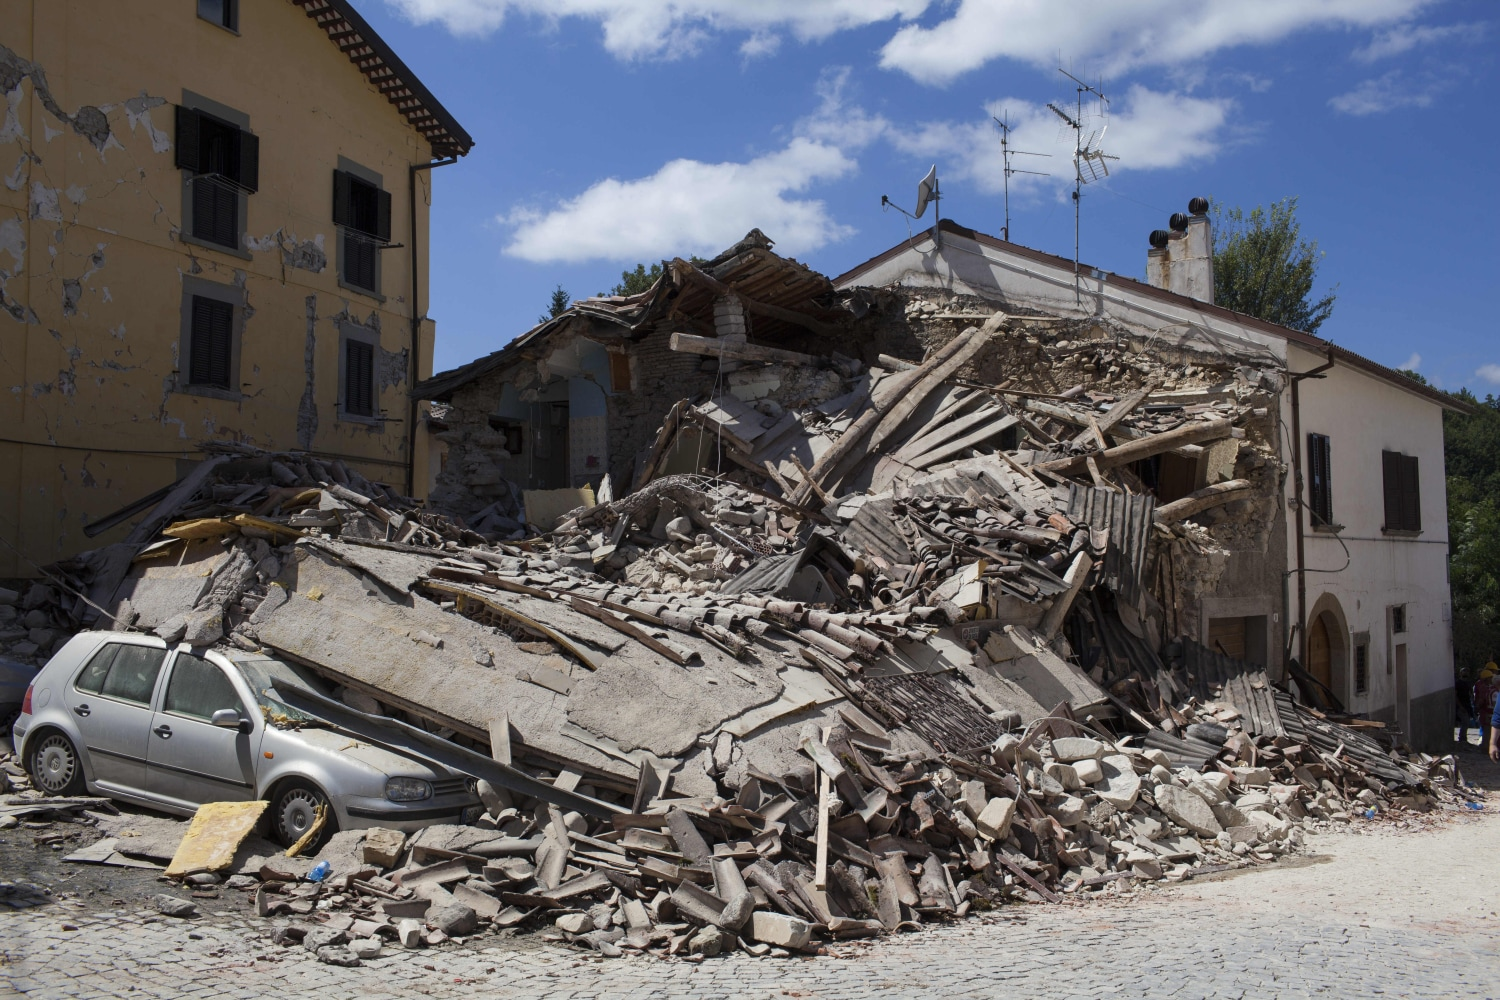 2016 Town Car >> Scenes From Italy's Earthquake: The Ancient Town of Amatrice Turned to Rubble - NBC News